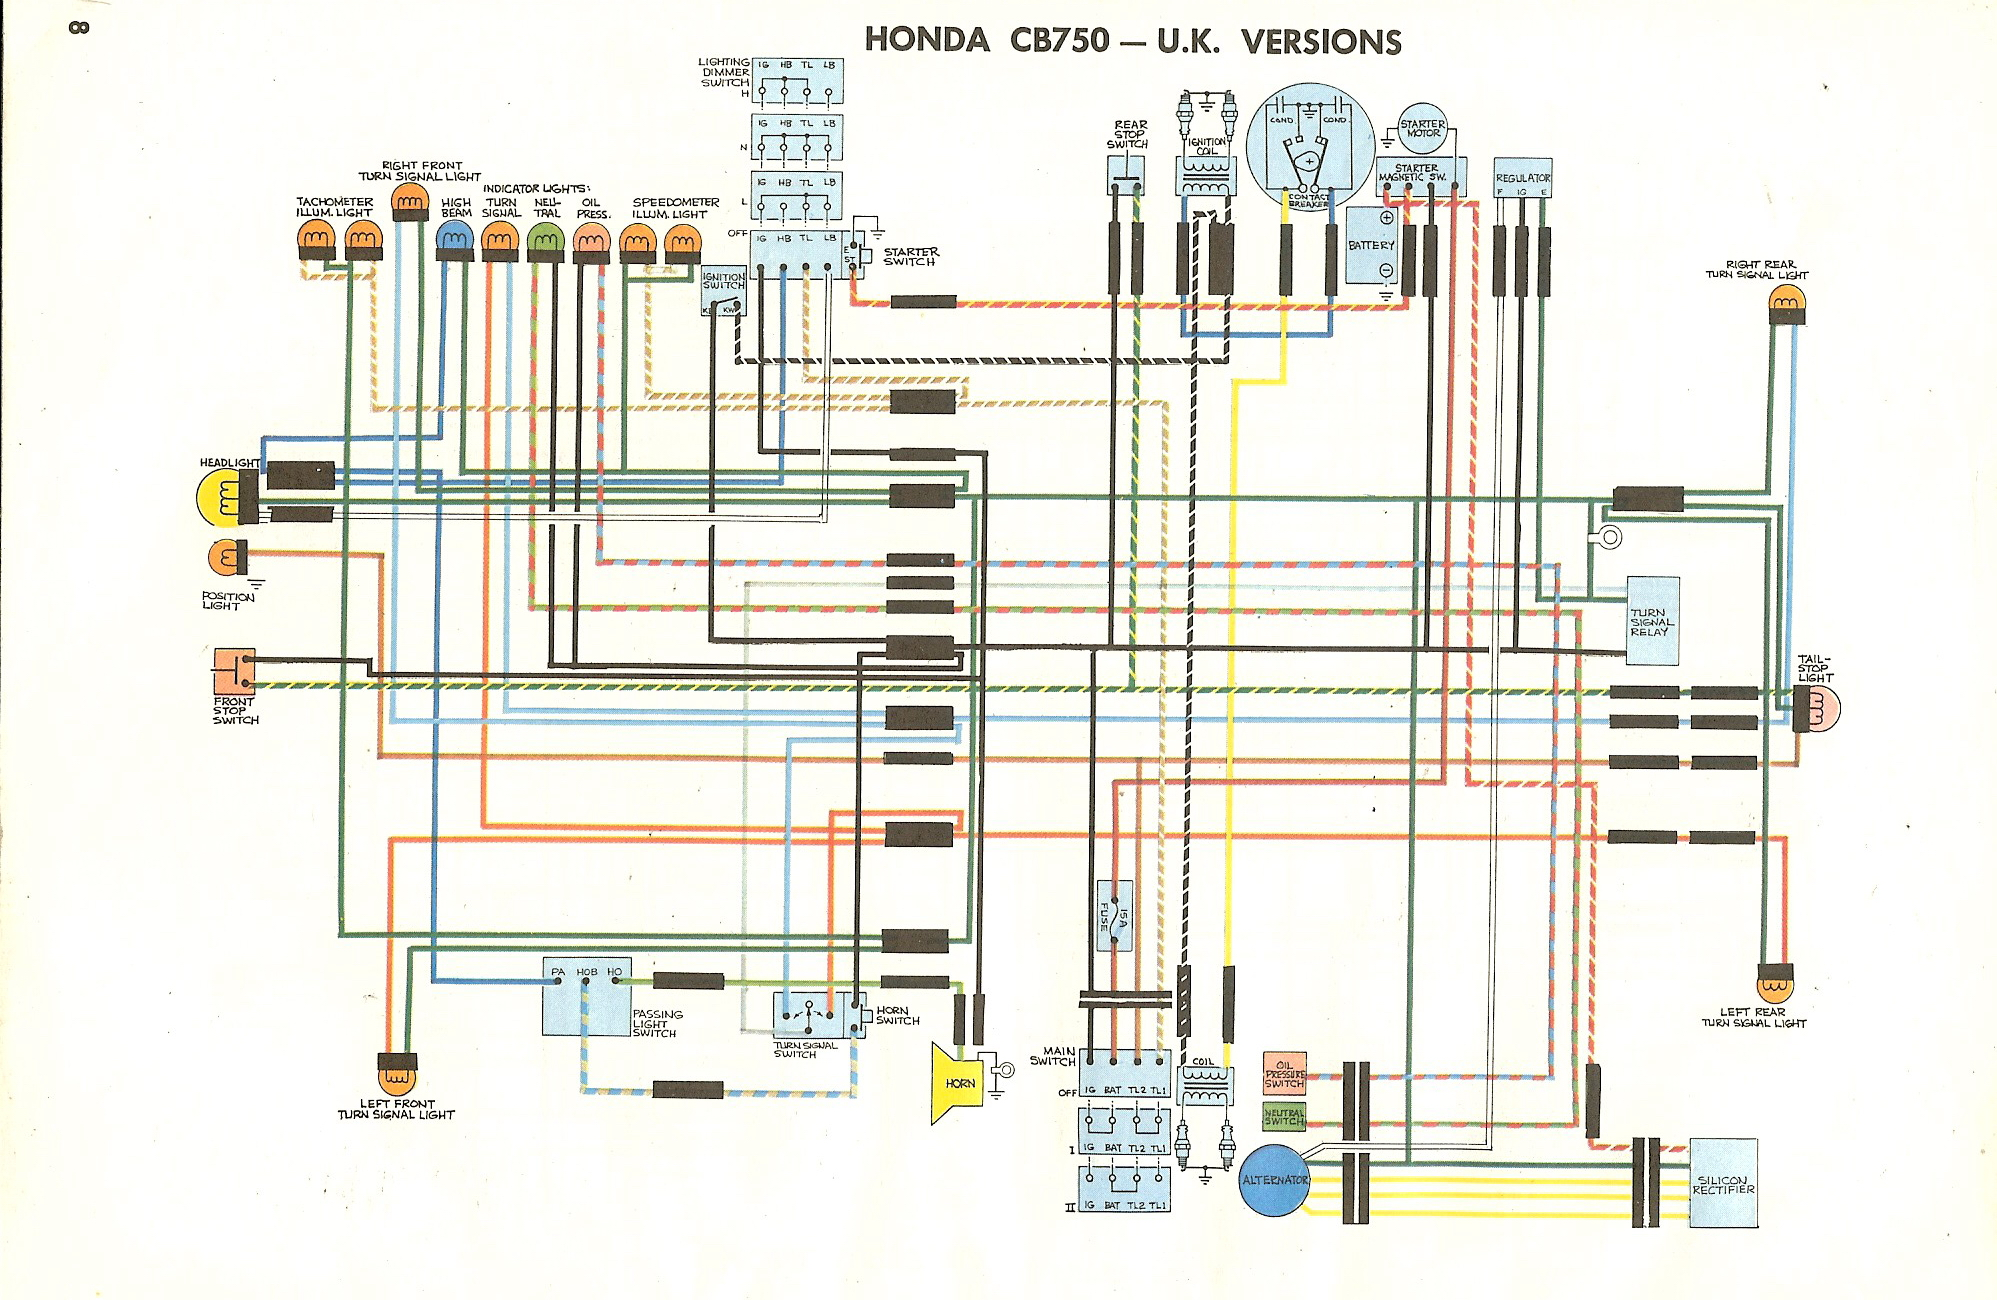 WD750UK cb750k honda cb550 wiring diagram at n-0.co